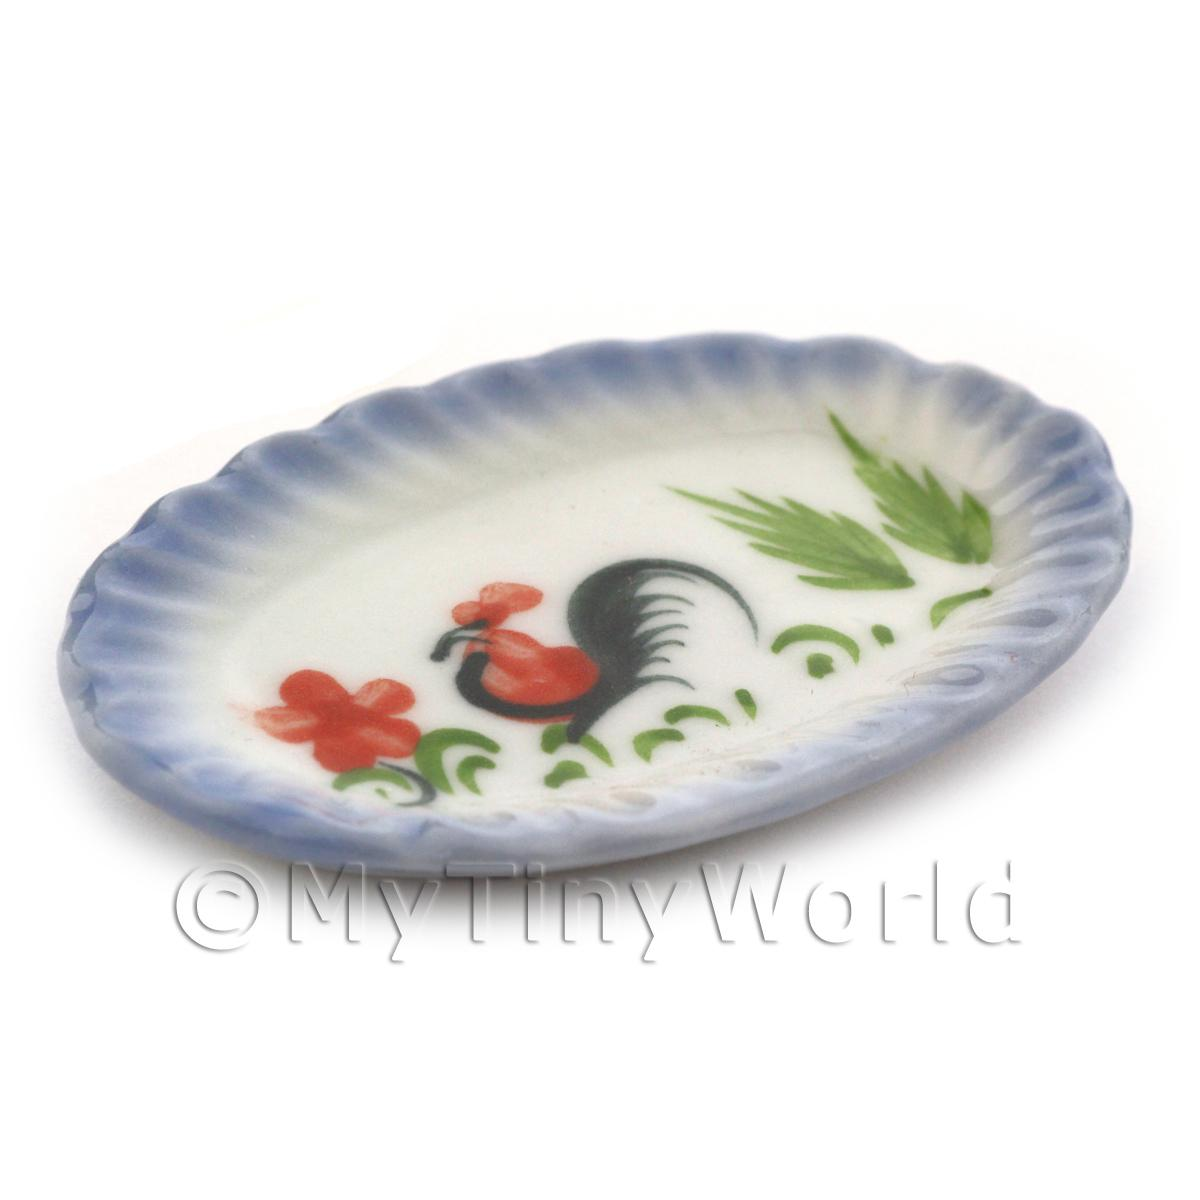 Dolls House Miniature 35mm x 52mm Oval Cockerel Plate